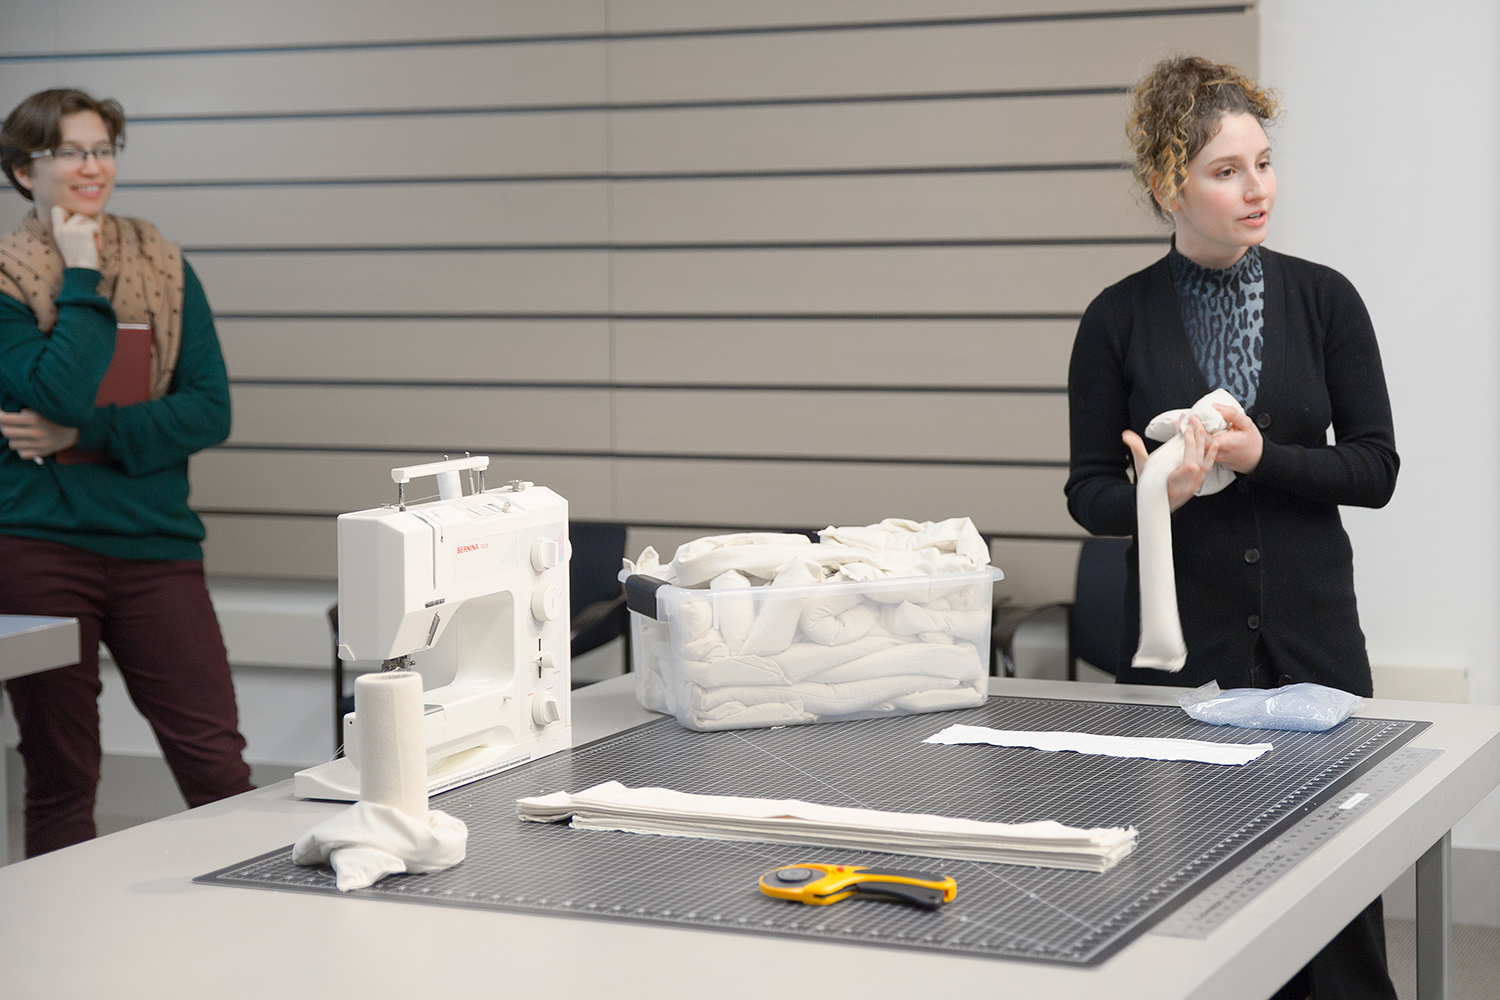 During a final presentation to classmates, Stone shares highlights from her experience creating custom supports.